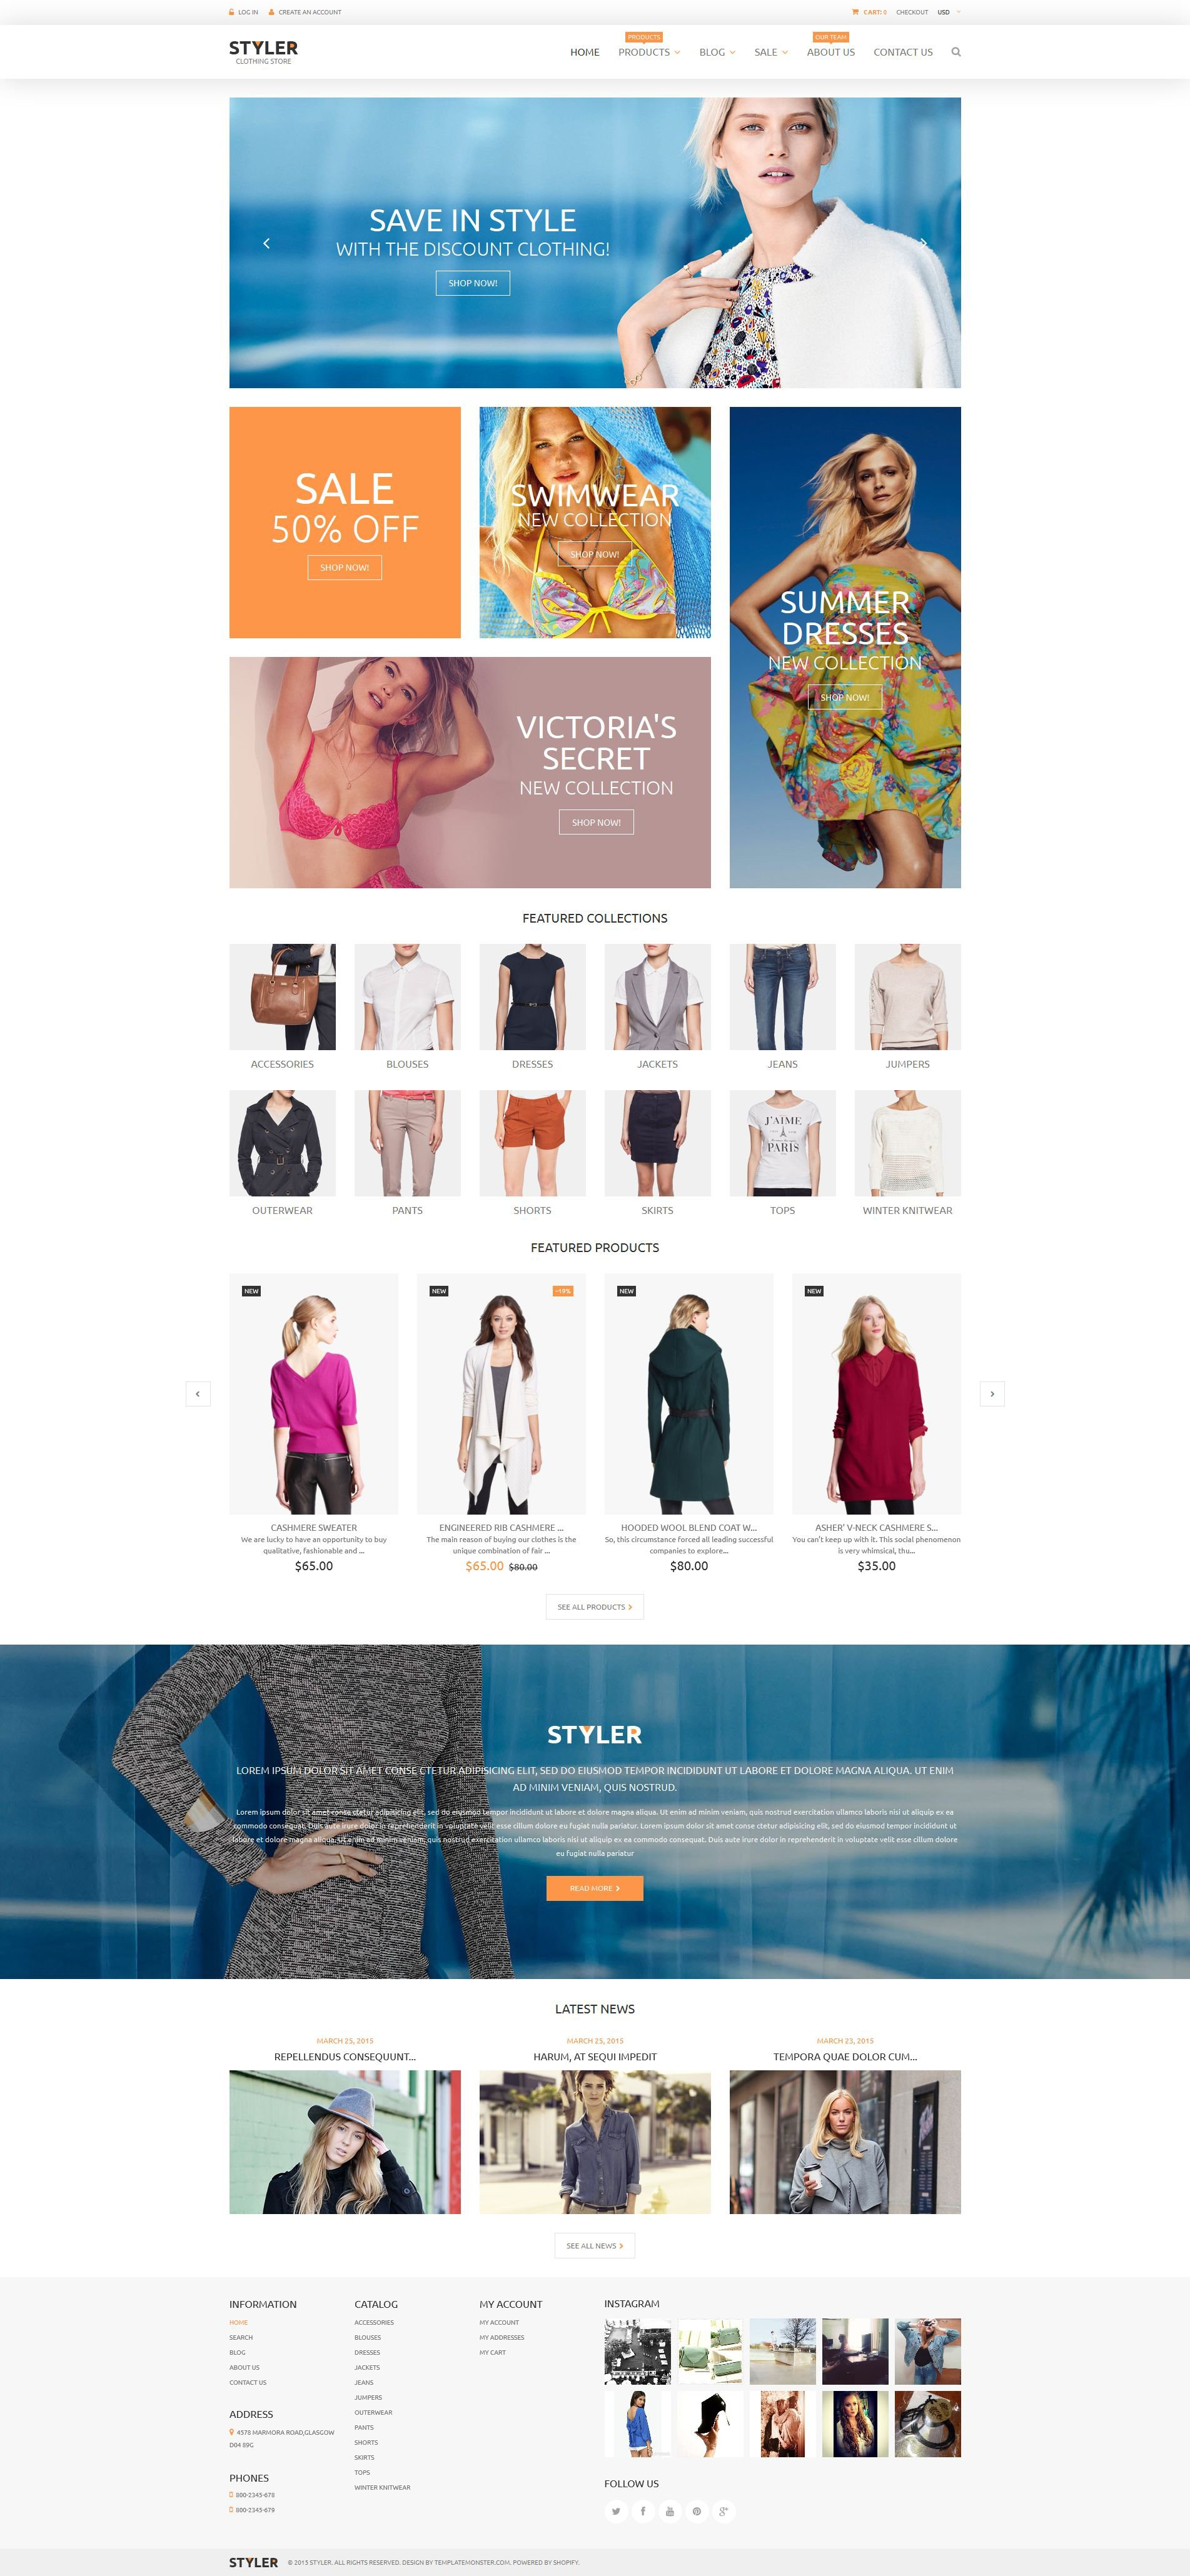 The Styler Clothes Shopify Design 53569, one of the best Shopify themes of its kind (fashion, most popular), also known as styler clothes Shopify template, wear Shopify template, clothing Shopify template, apparel Shopify template, work Shopify template, shoes Shopify template, gloves Shopify template, wear Shopify template, Safety Boots WEAR footwear Shopify template, shirts Shopify template, protective Shopify template, goggles Shopify template, protective Shopify template, eyewear and related with styler clothes, wear, clothing, apparel, work, shoes, gloves, wear, Safety Boots WEAR footwear, shirts, protective, goggles, protective, eyewear, etc.